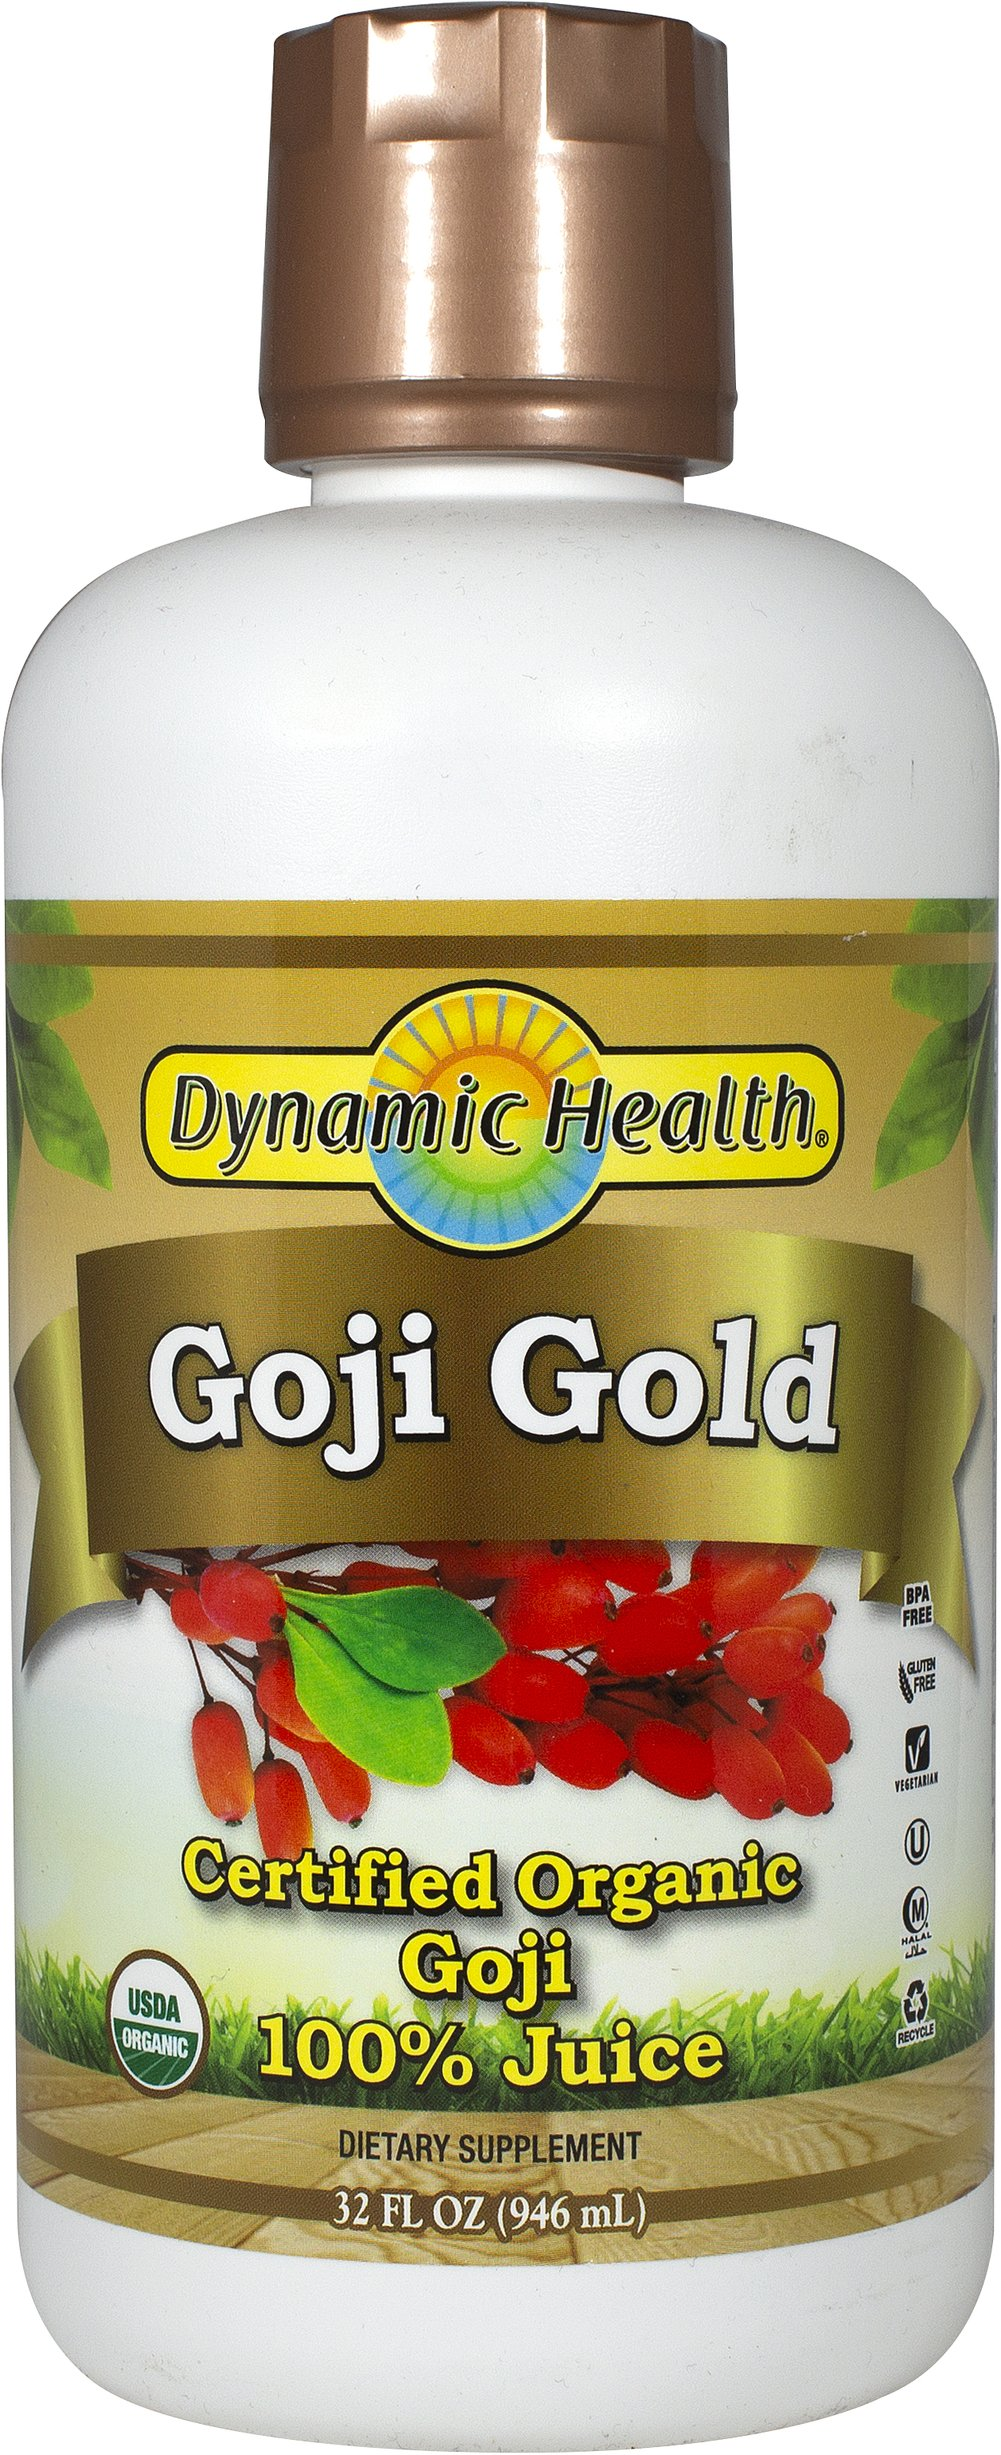 Organic Goji Gold 100% Pure Juice